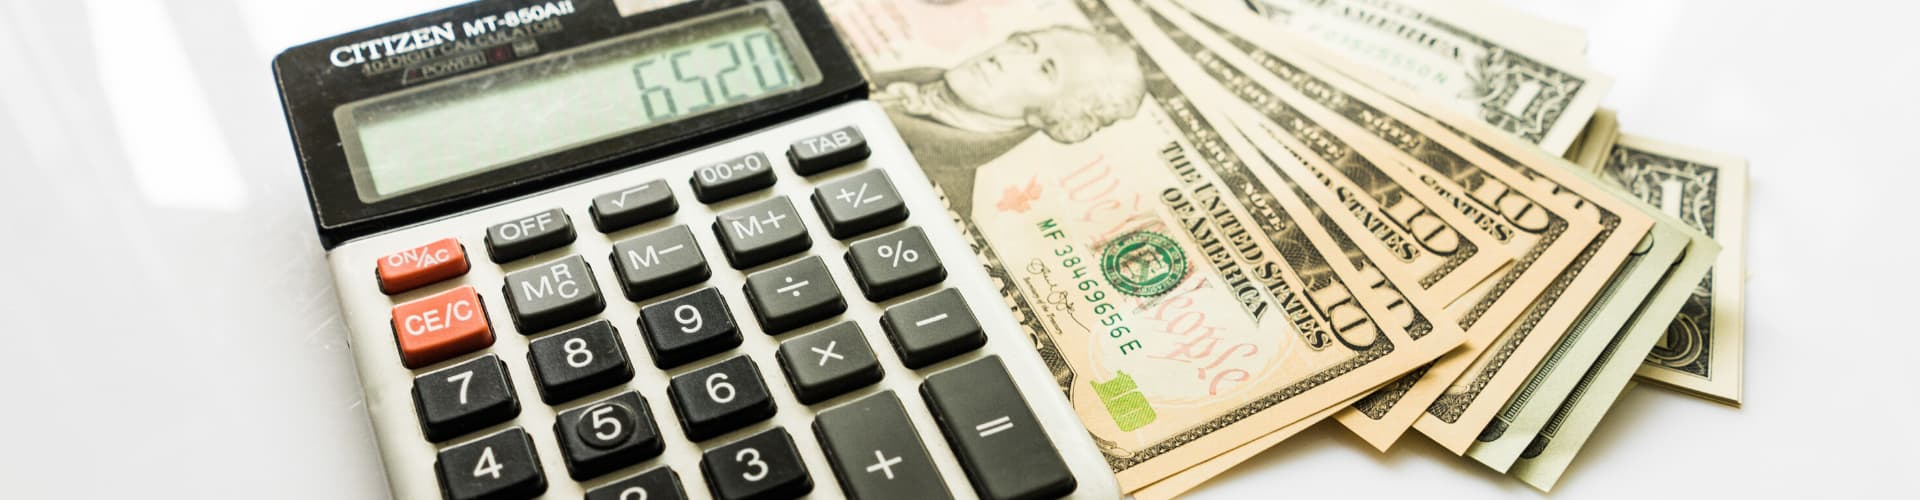 Sturgis Bank Financial Calculators